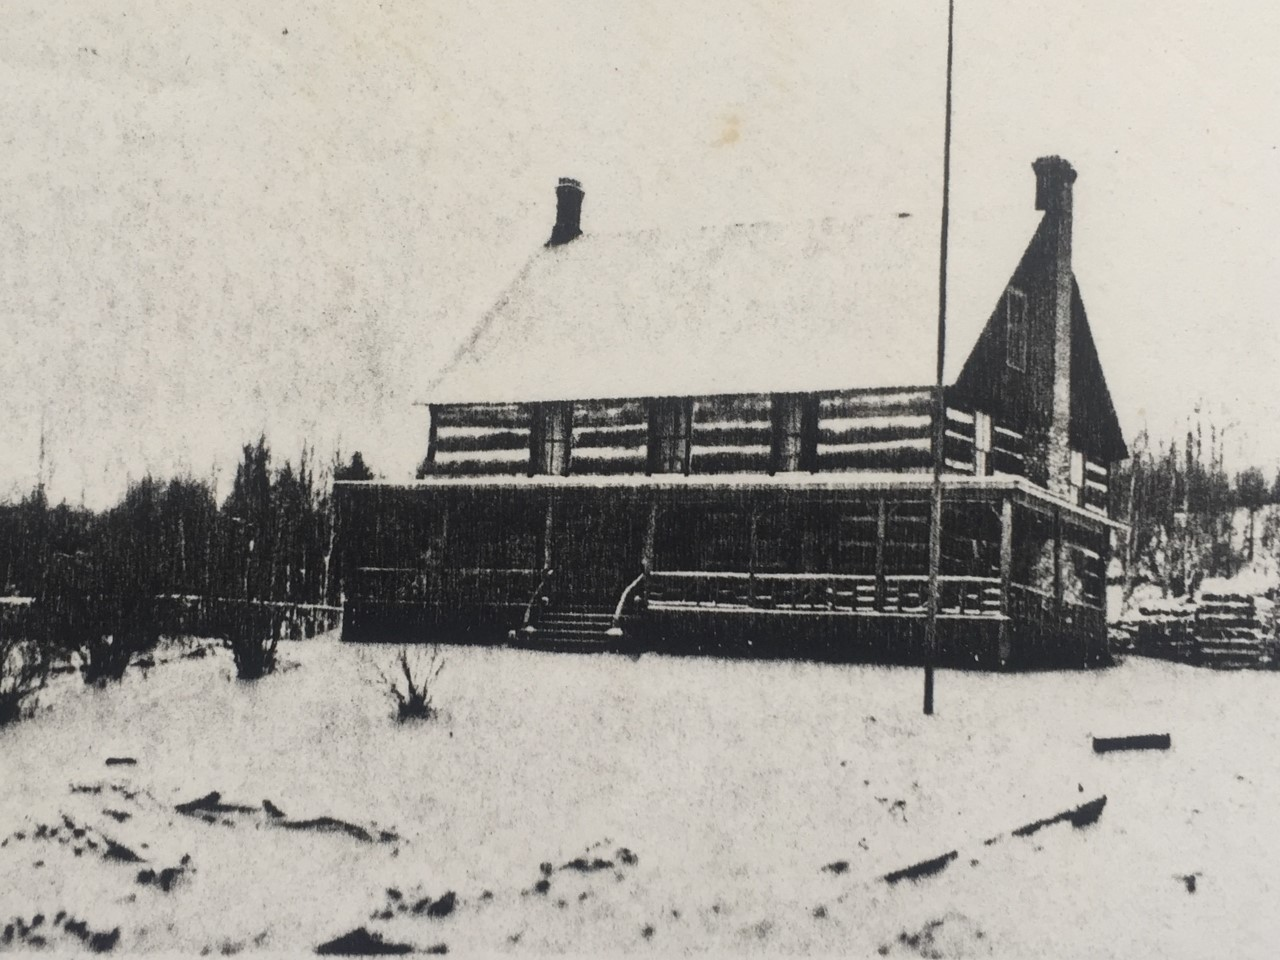 a old wooden building